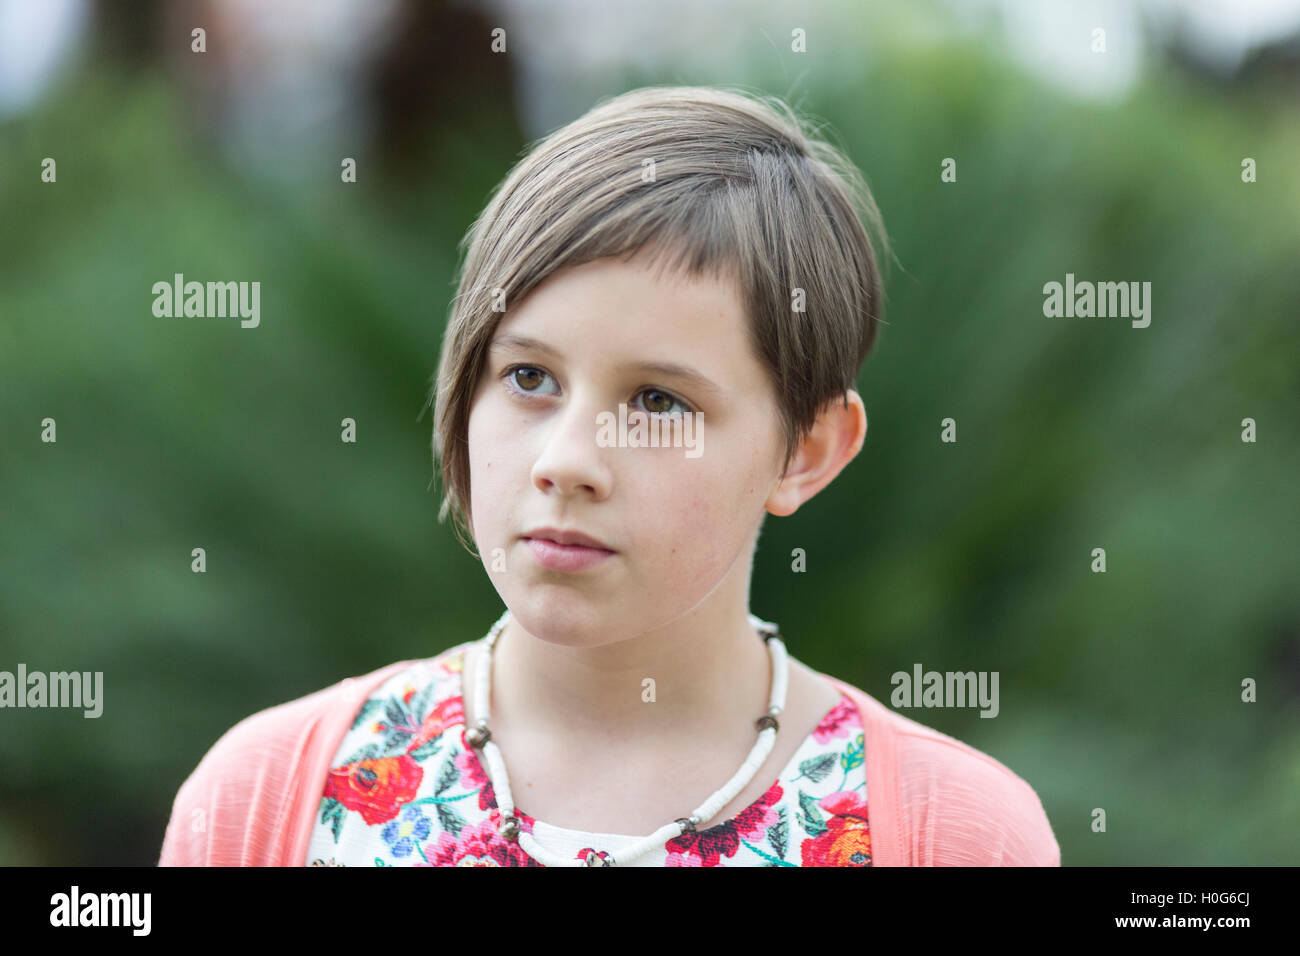 Ruby Barnhill ,English actress, played the lead role of Sophie in Steven Spielberg's 2016 film The BFG. Pictured - Stock Image